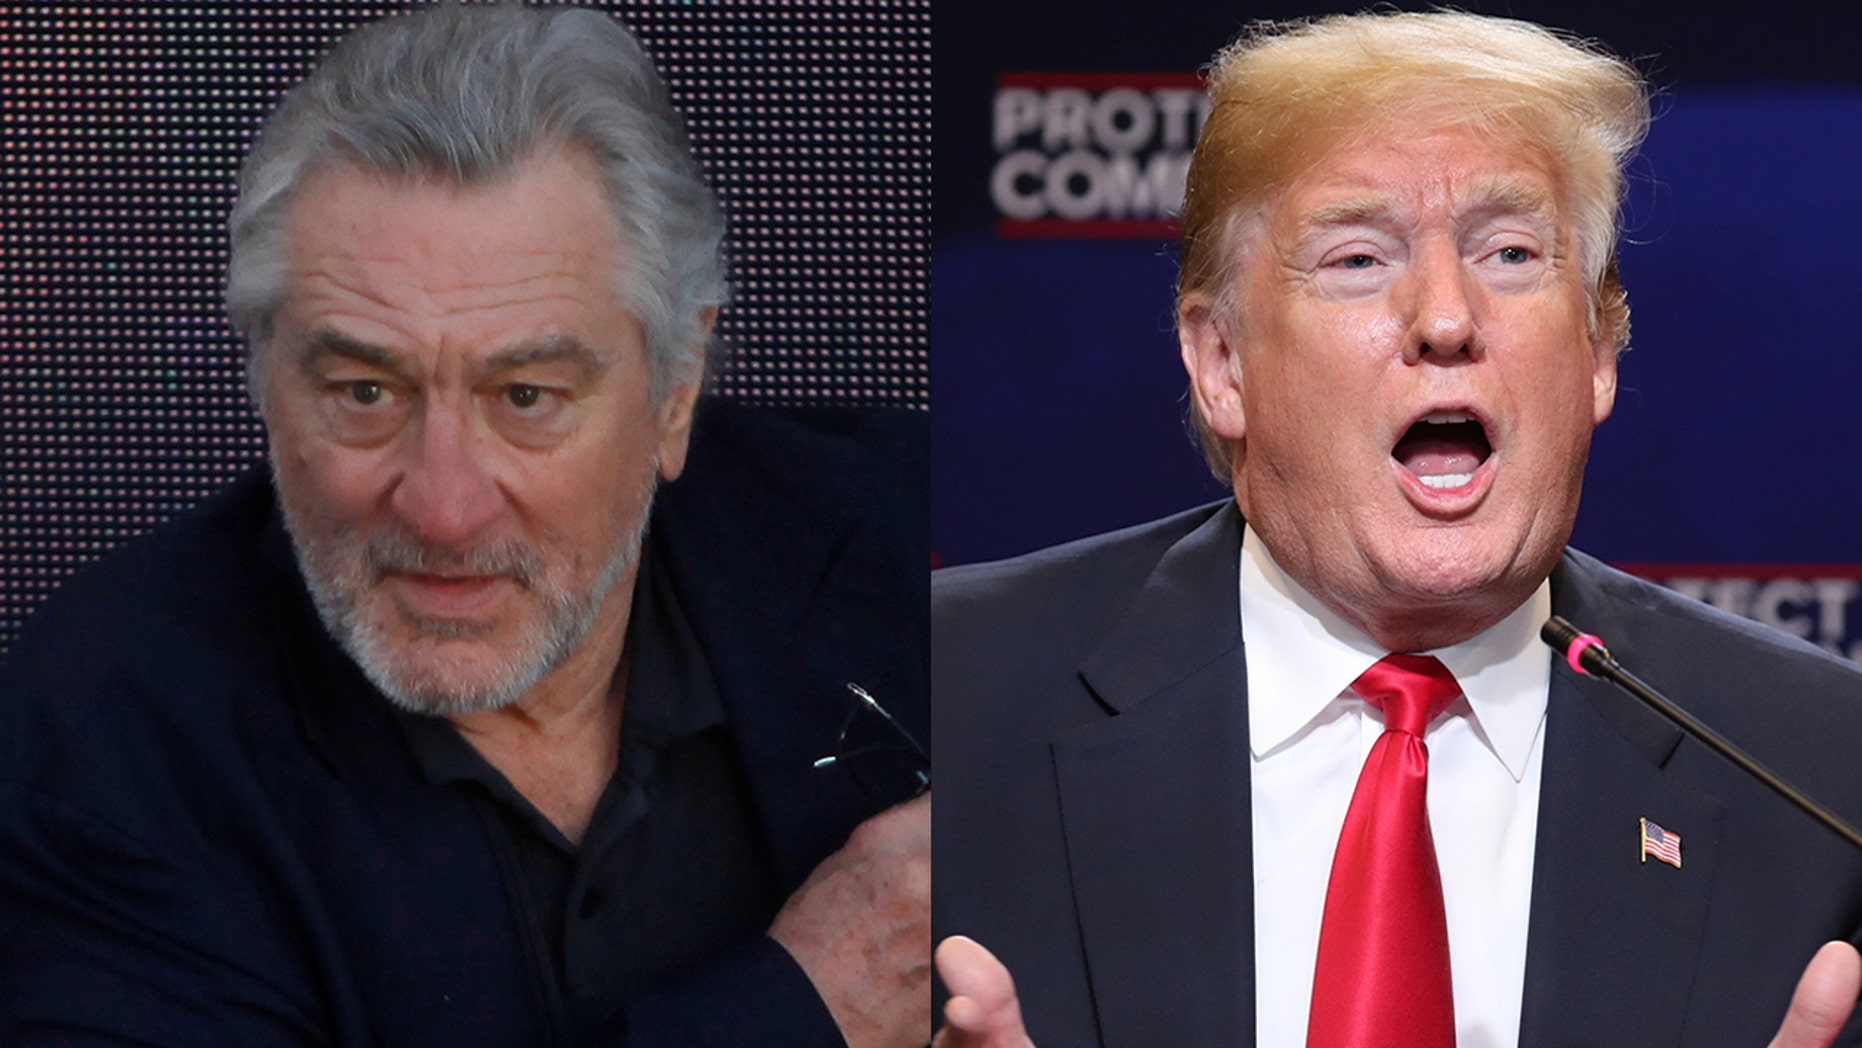 Robert De Niro, 74, made it clear that President Trump isn't welcome at the restaurant chain he co-owns.